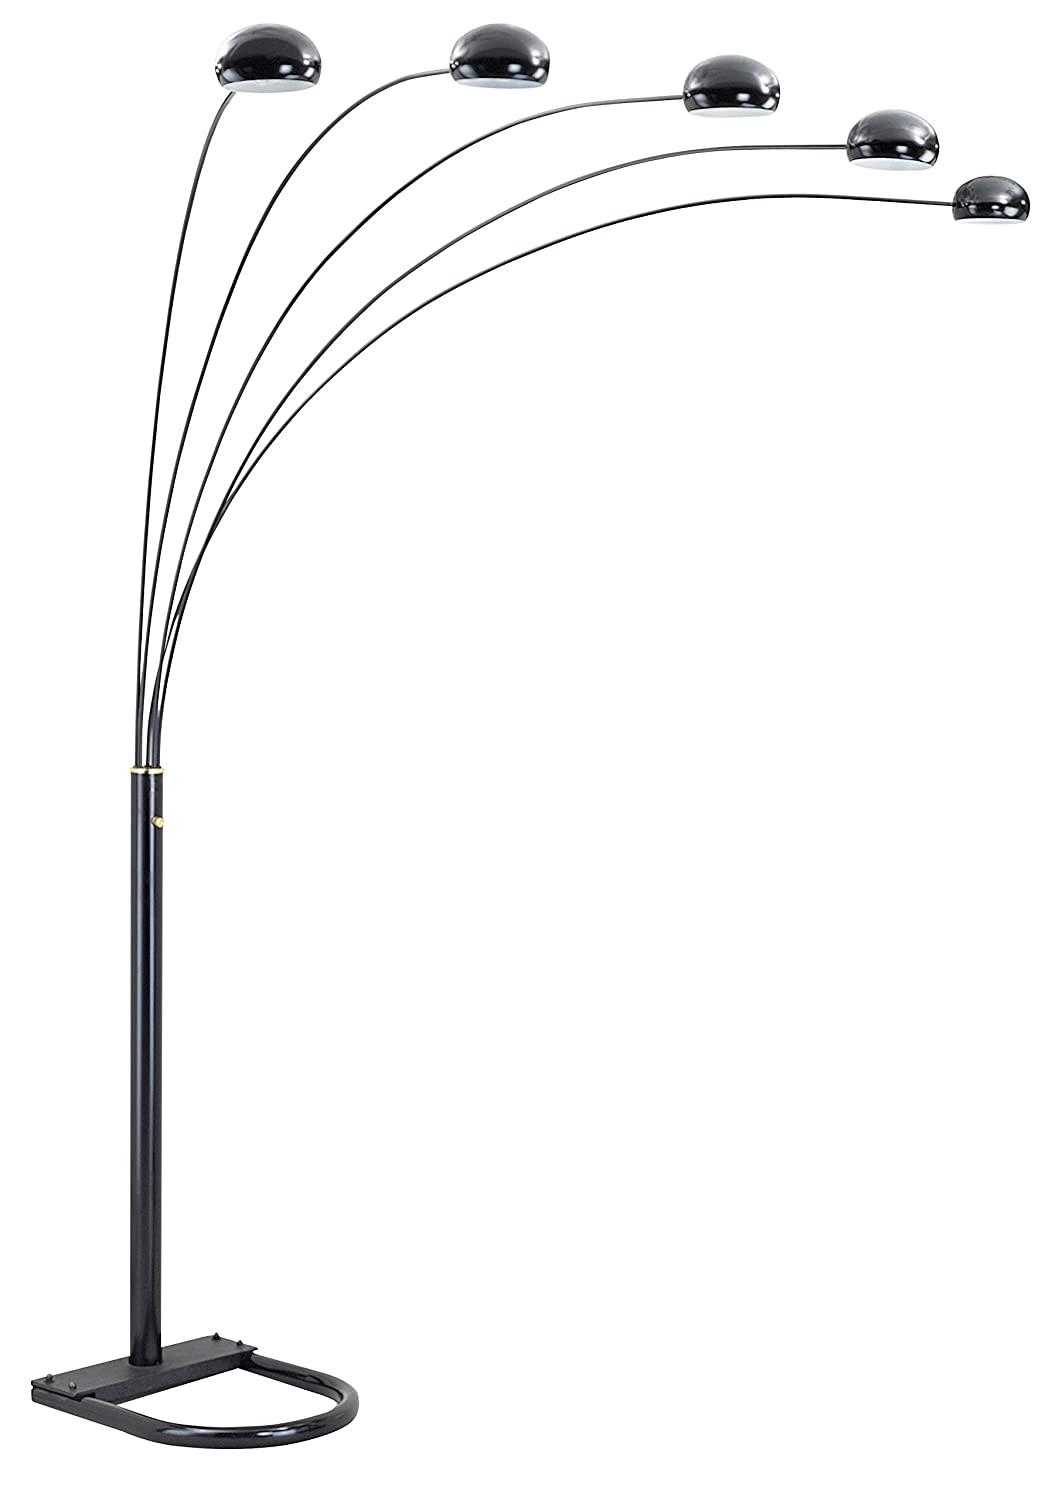 Amazon.com: OK Lighting OK-9628K 5-Arch Floor Lamp, 88-Inch ...